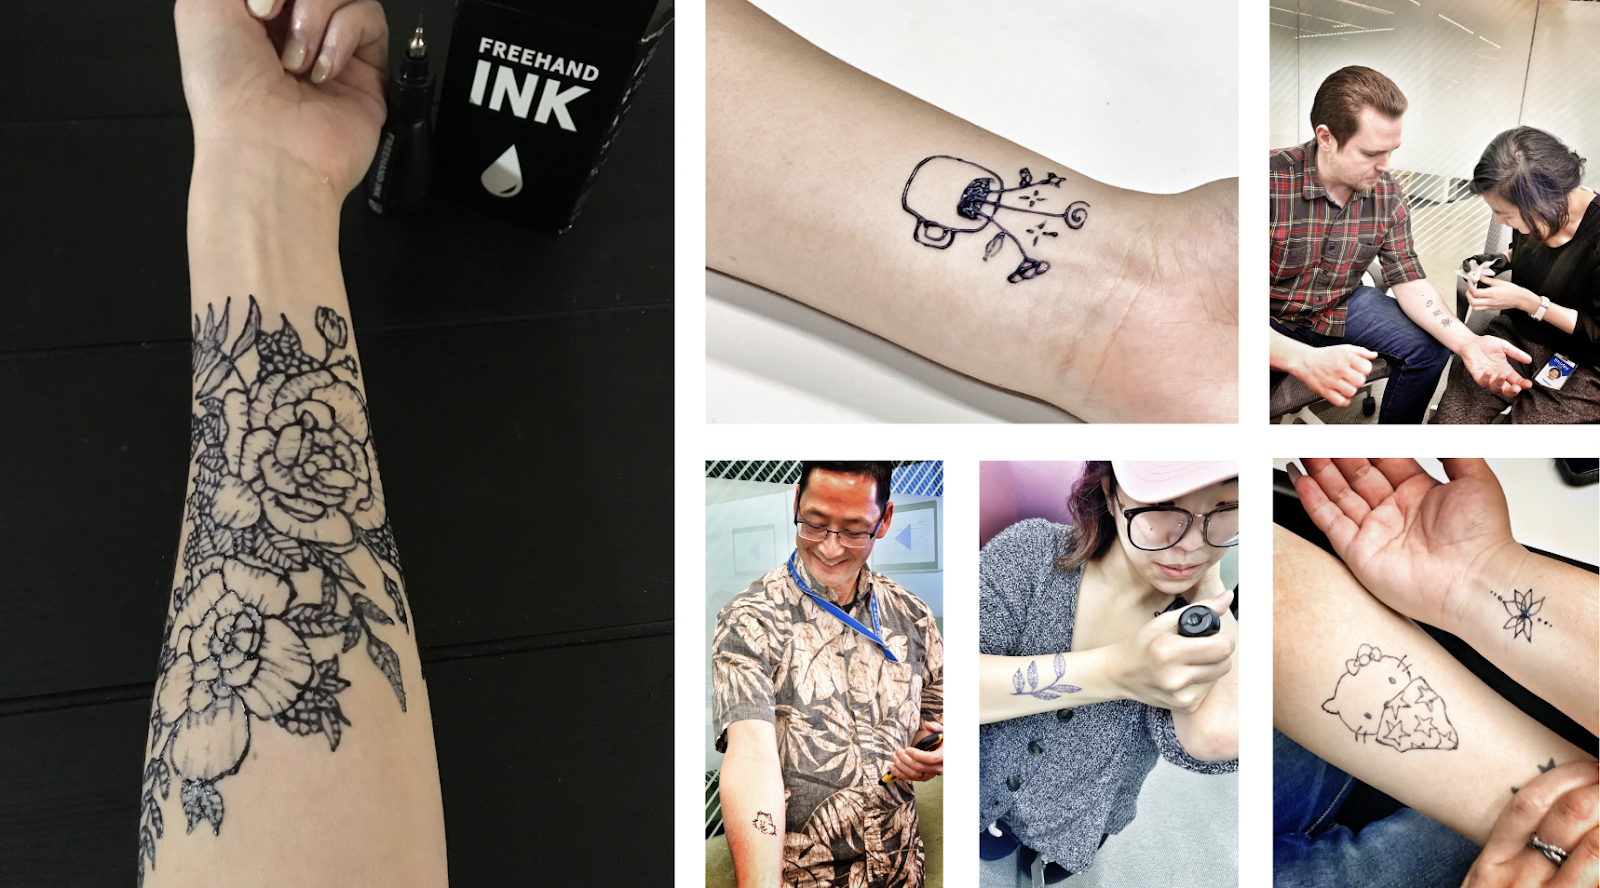 Montage of people in a conference room applying and showing off temporary tattoos